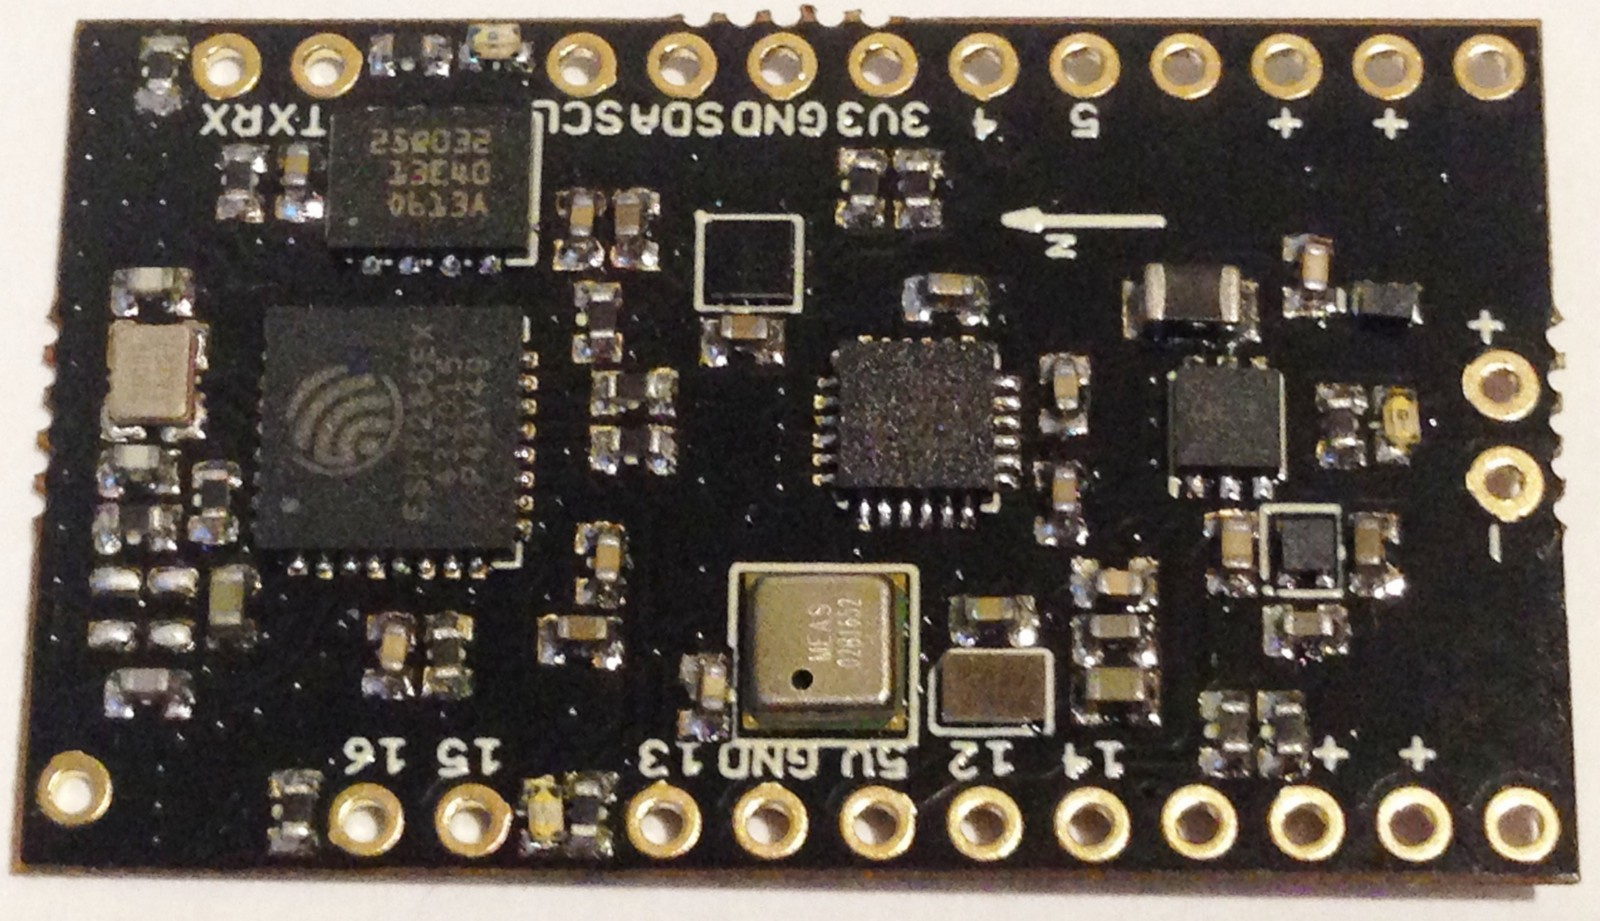 Superfly A Hackable Esp8266 Flight Controller With An Ultimate